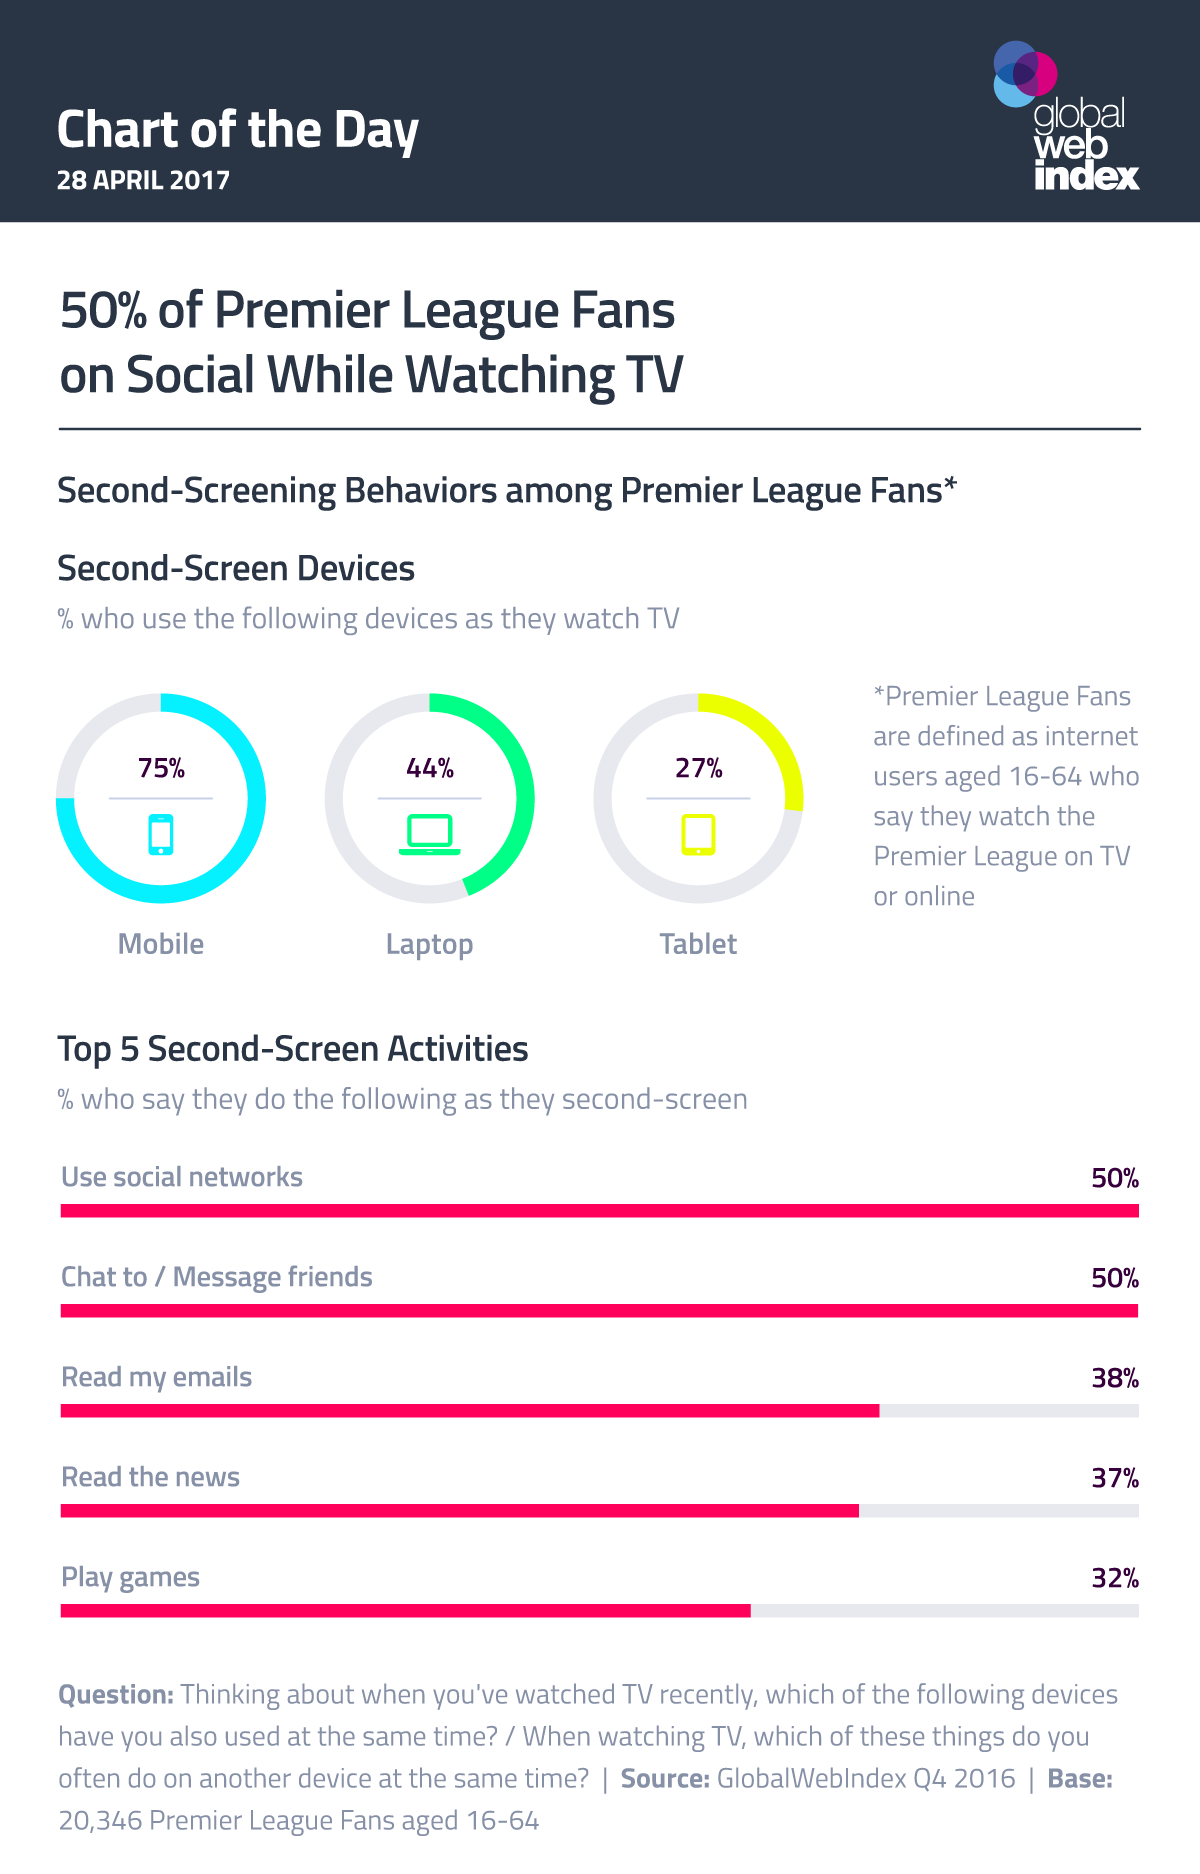 50% of Premier League Fans on Social While Watching TV